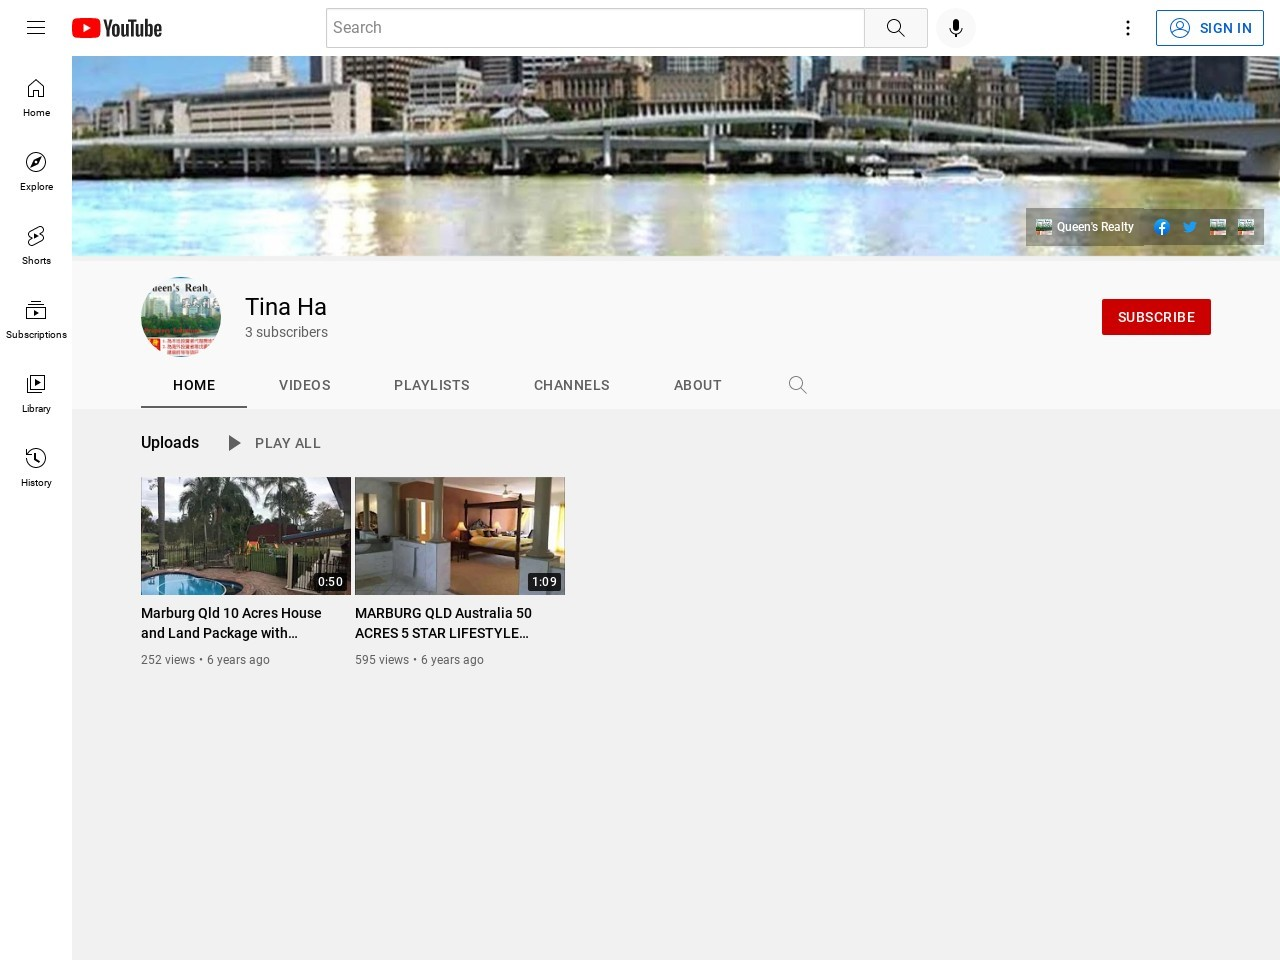 Queen's Realty on YouTube